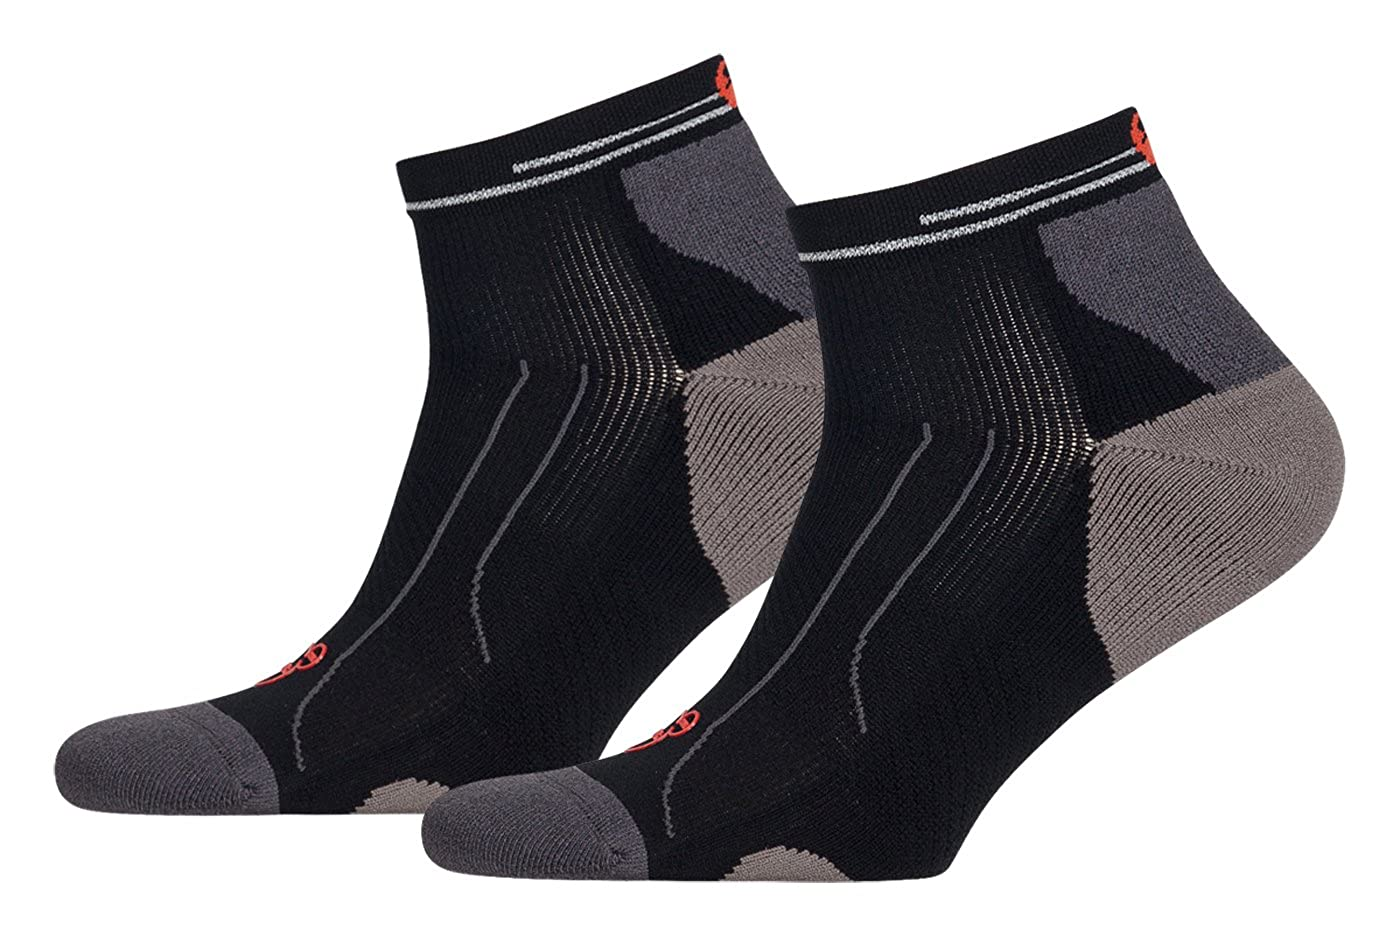 fd7a915f8 Amazon.com: Mens and Ladies 1 Pair Puma PowerCELL Performance and Mid-Weight  Quarter Running Socks: Clothing